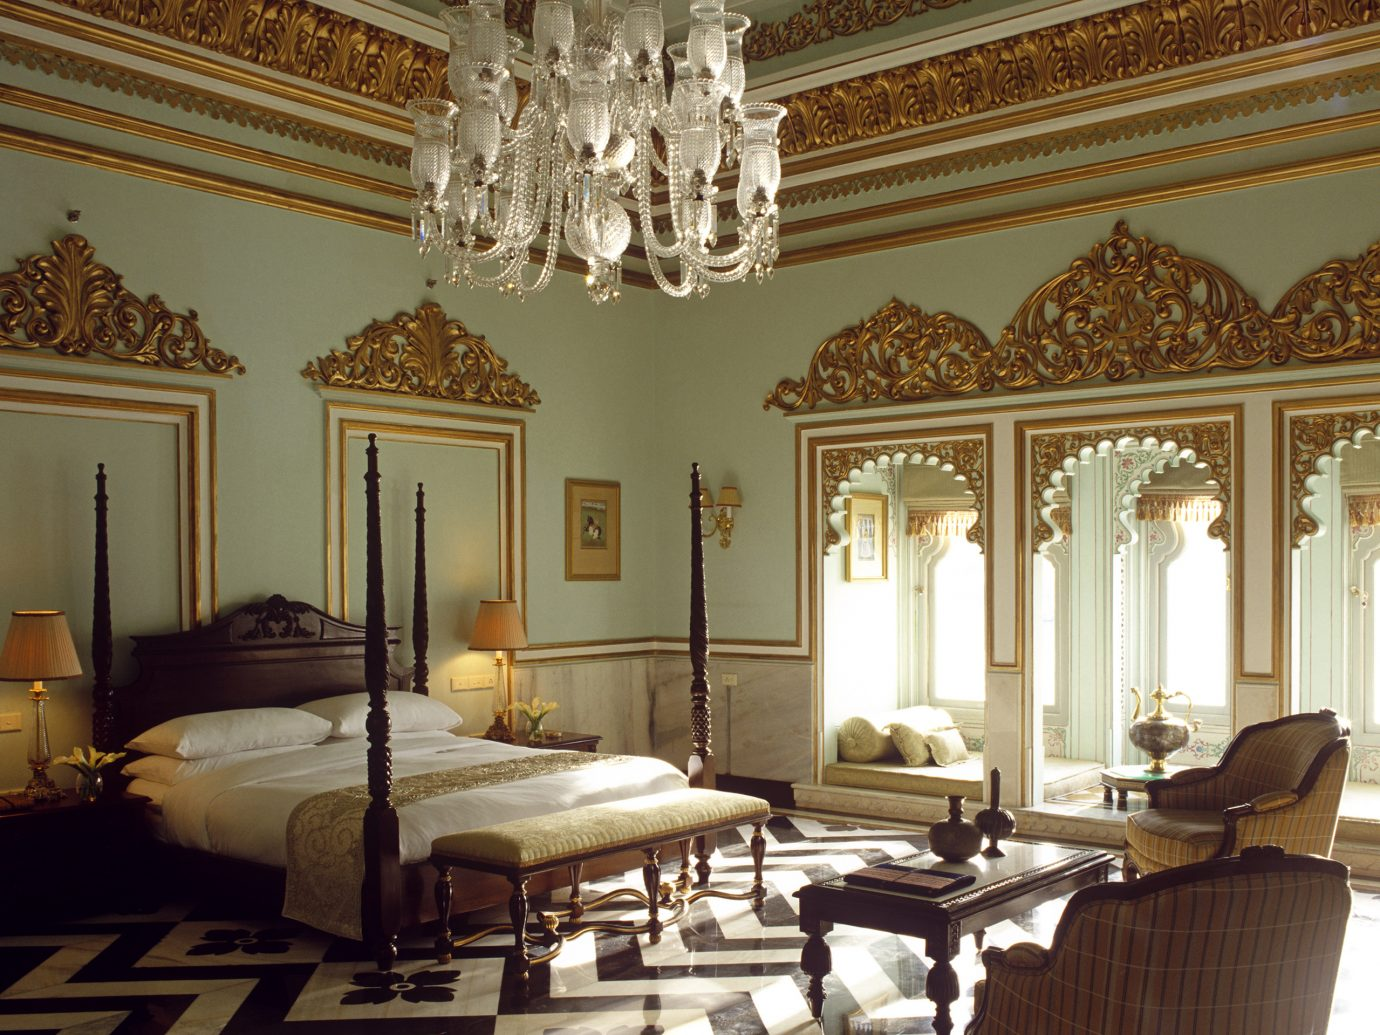 Bedroom at Taj Lake Palace, Udaipur